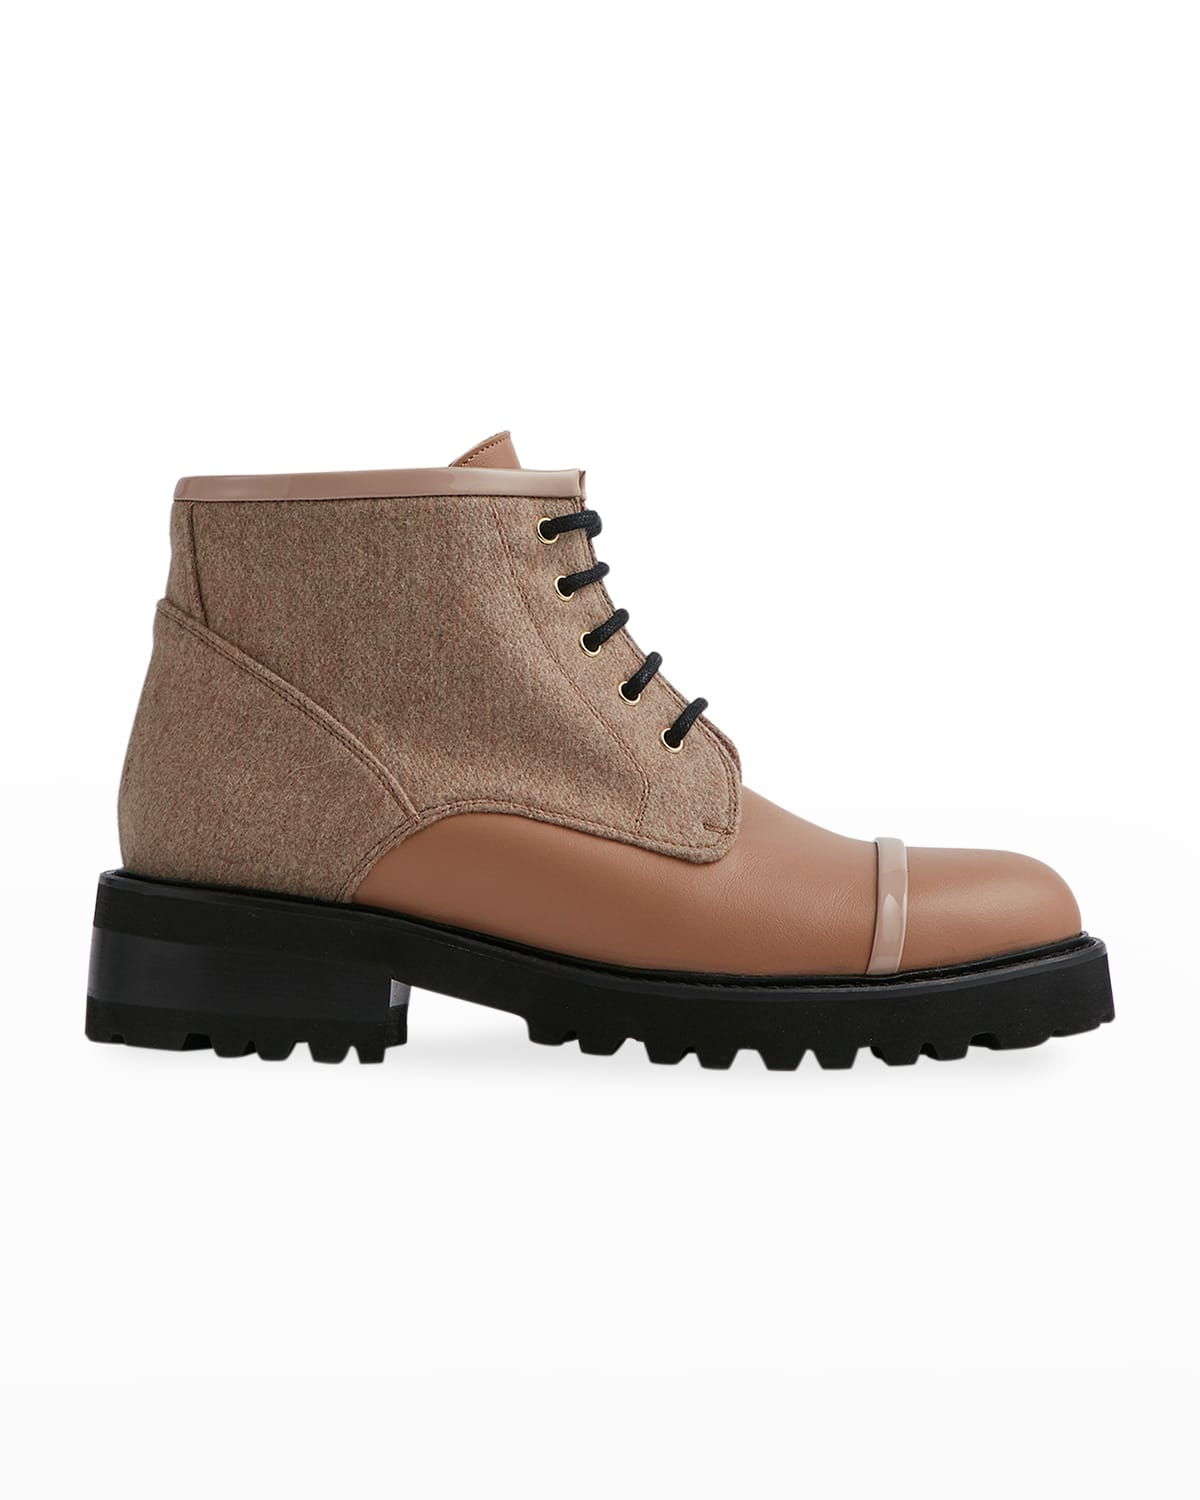 Wool Lace-Up Combat Booties